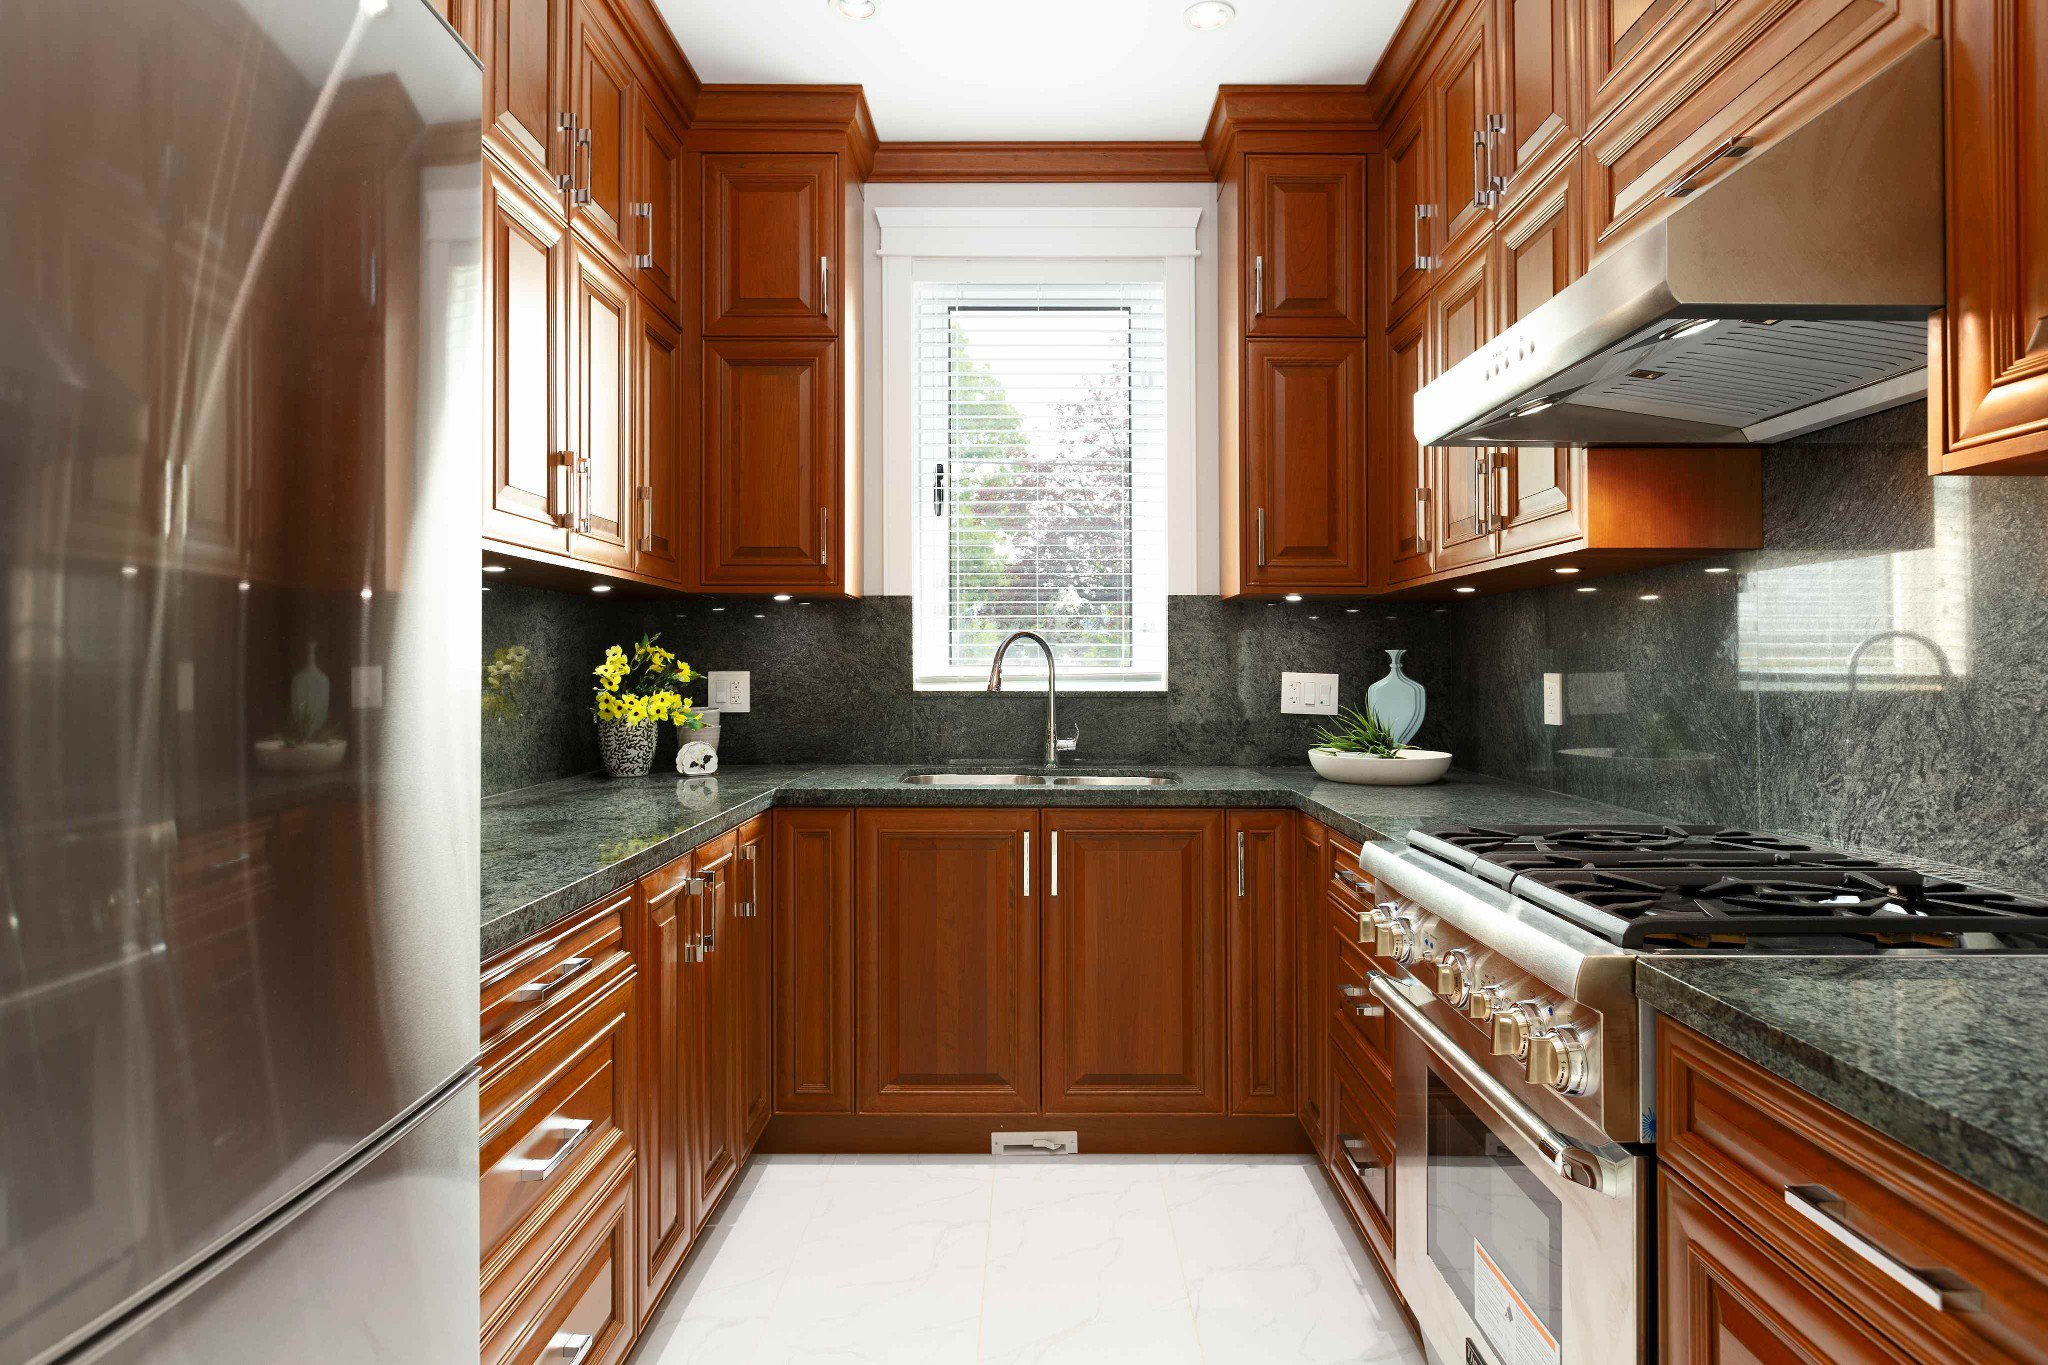 Photo 7: Photos: 2428 W 22ND Avenue in Vancouver: Arbutus House for sale (Vancouver West)  : MLS®# R2292856